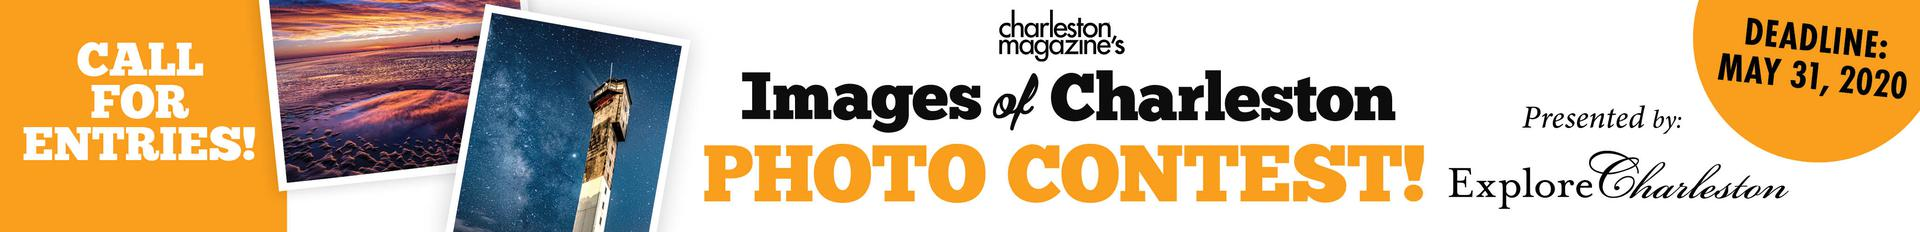 Images of Charleston Photo Contest